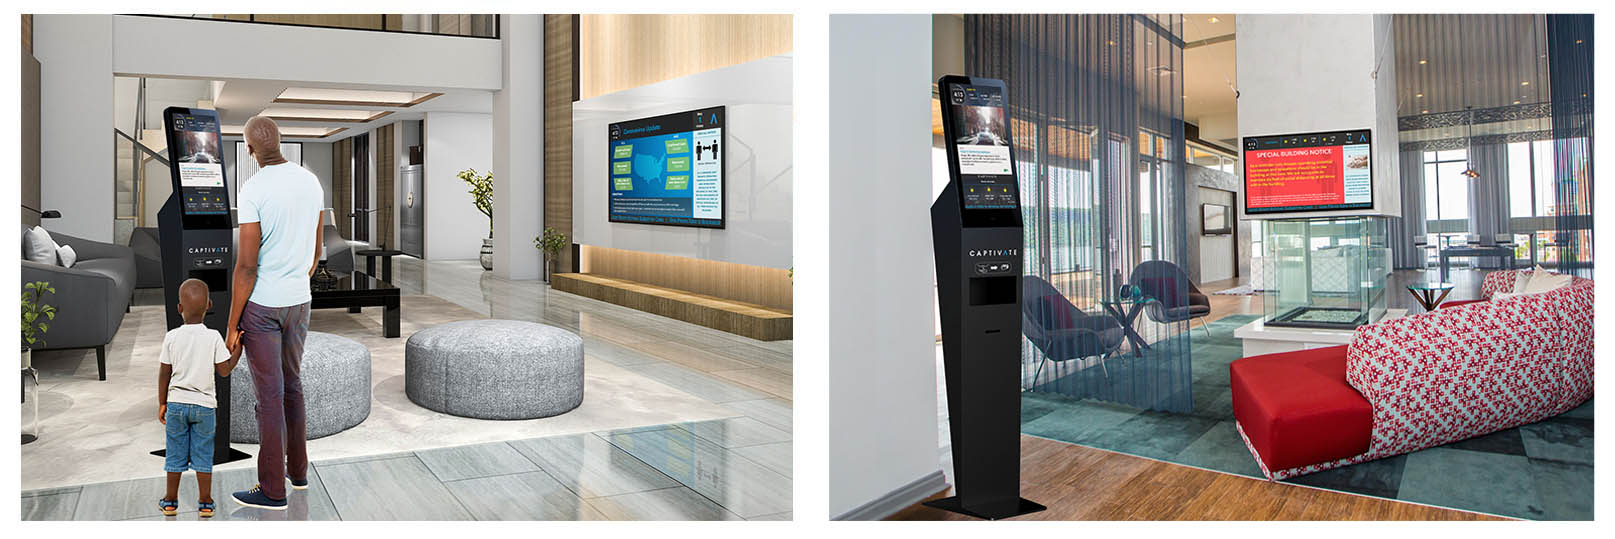 Captivate CLEAN and Captivate | SCAN Residential Communications